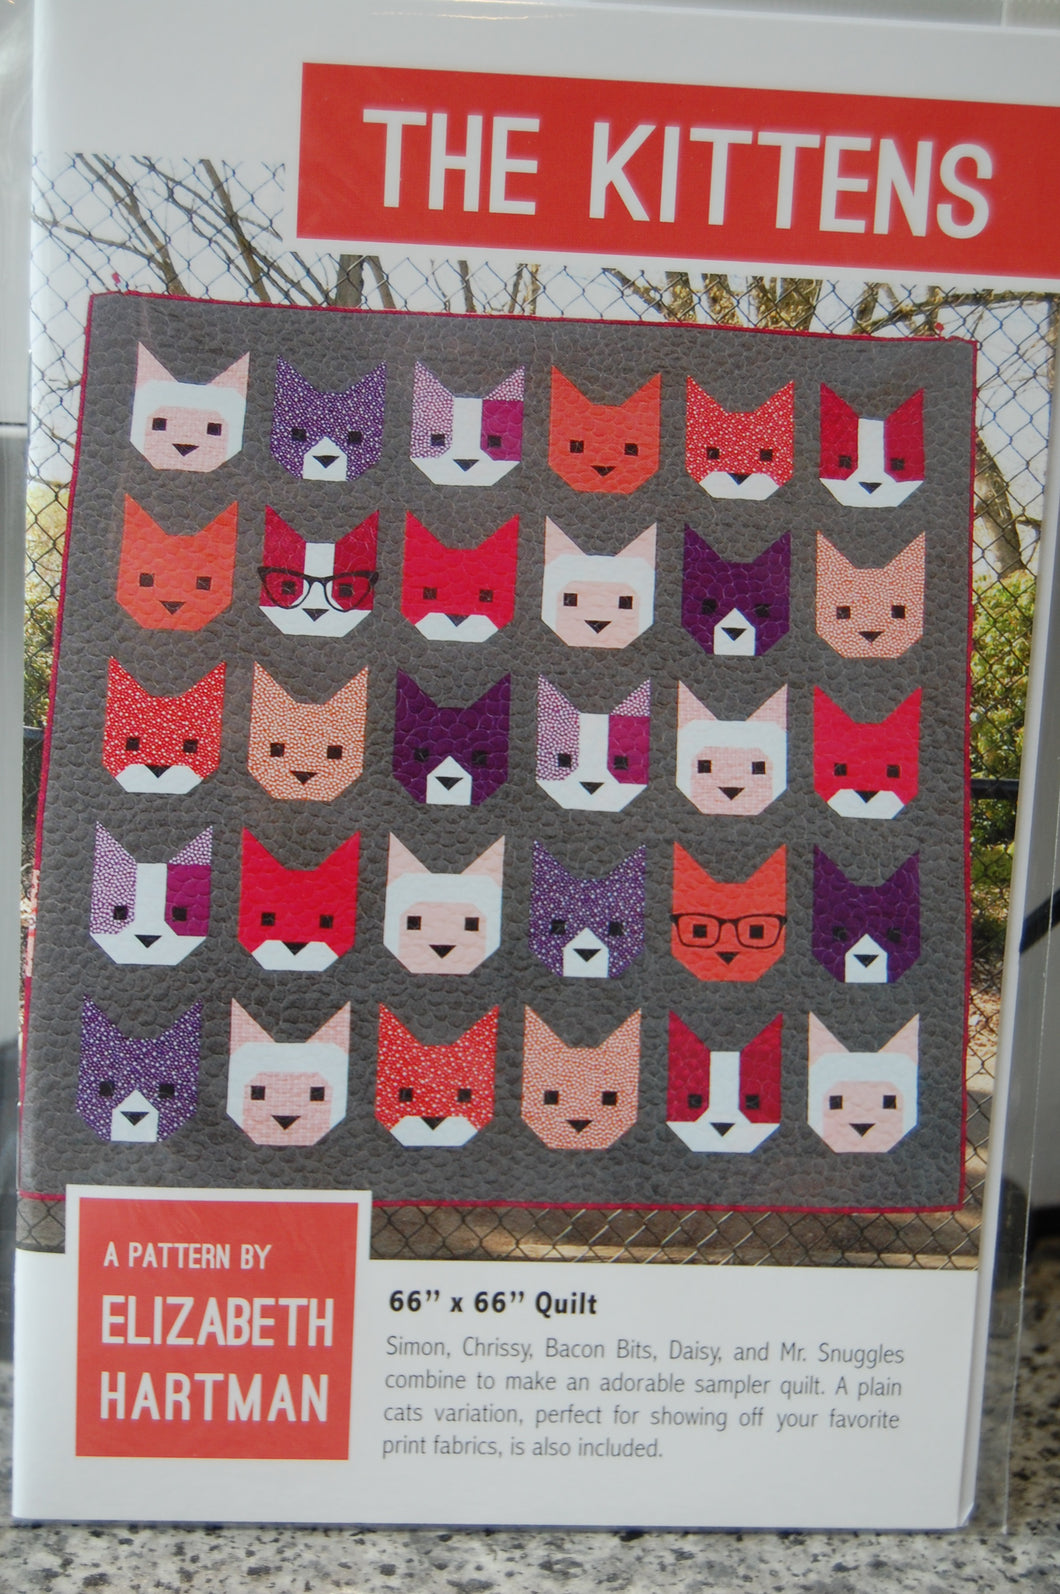 Fabric Shack Sewing Quilting Sew Fat Quarter Cotton Quilt Patchwork Pattern Elizabeth Hartman The Kittens Kitten Kitty Cat Pussy